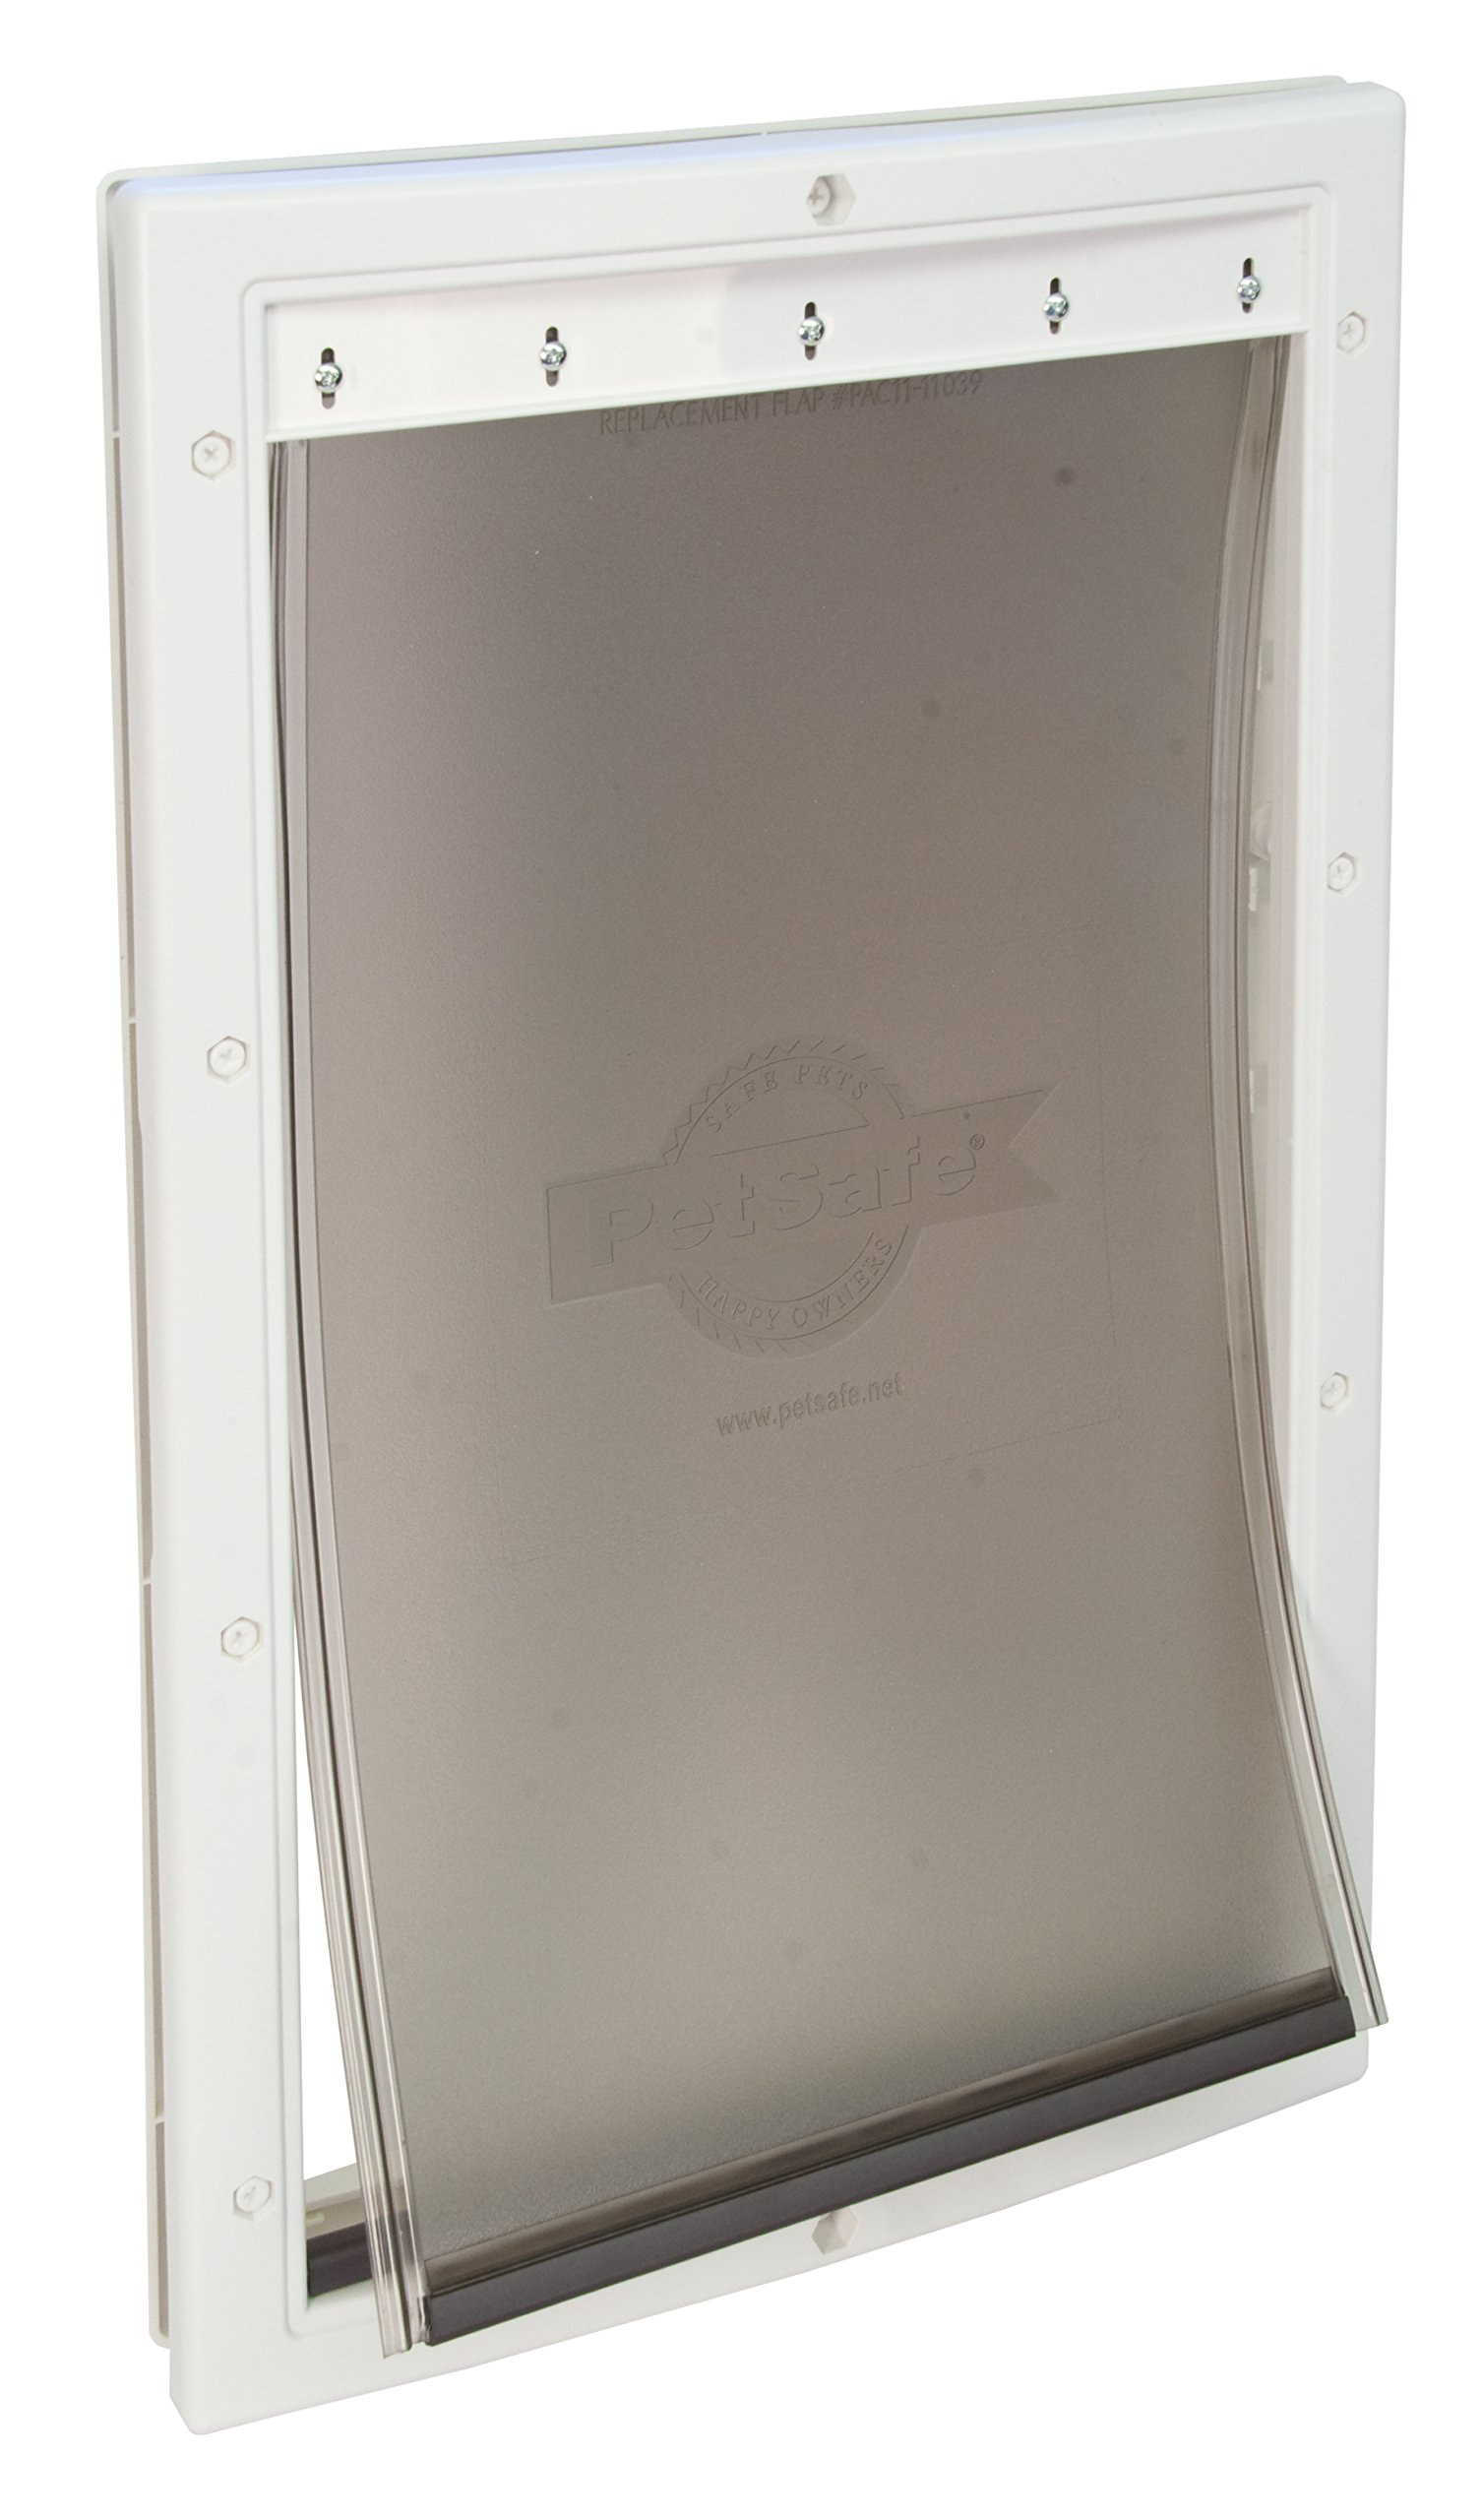 PetSafe Plastic Pet Door Large with Soft Tinted Flap, Paintable White Frame, for dogs up to 100 lb. by PetSafe